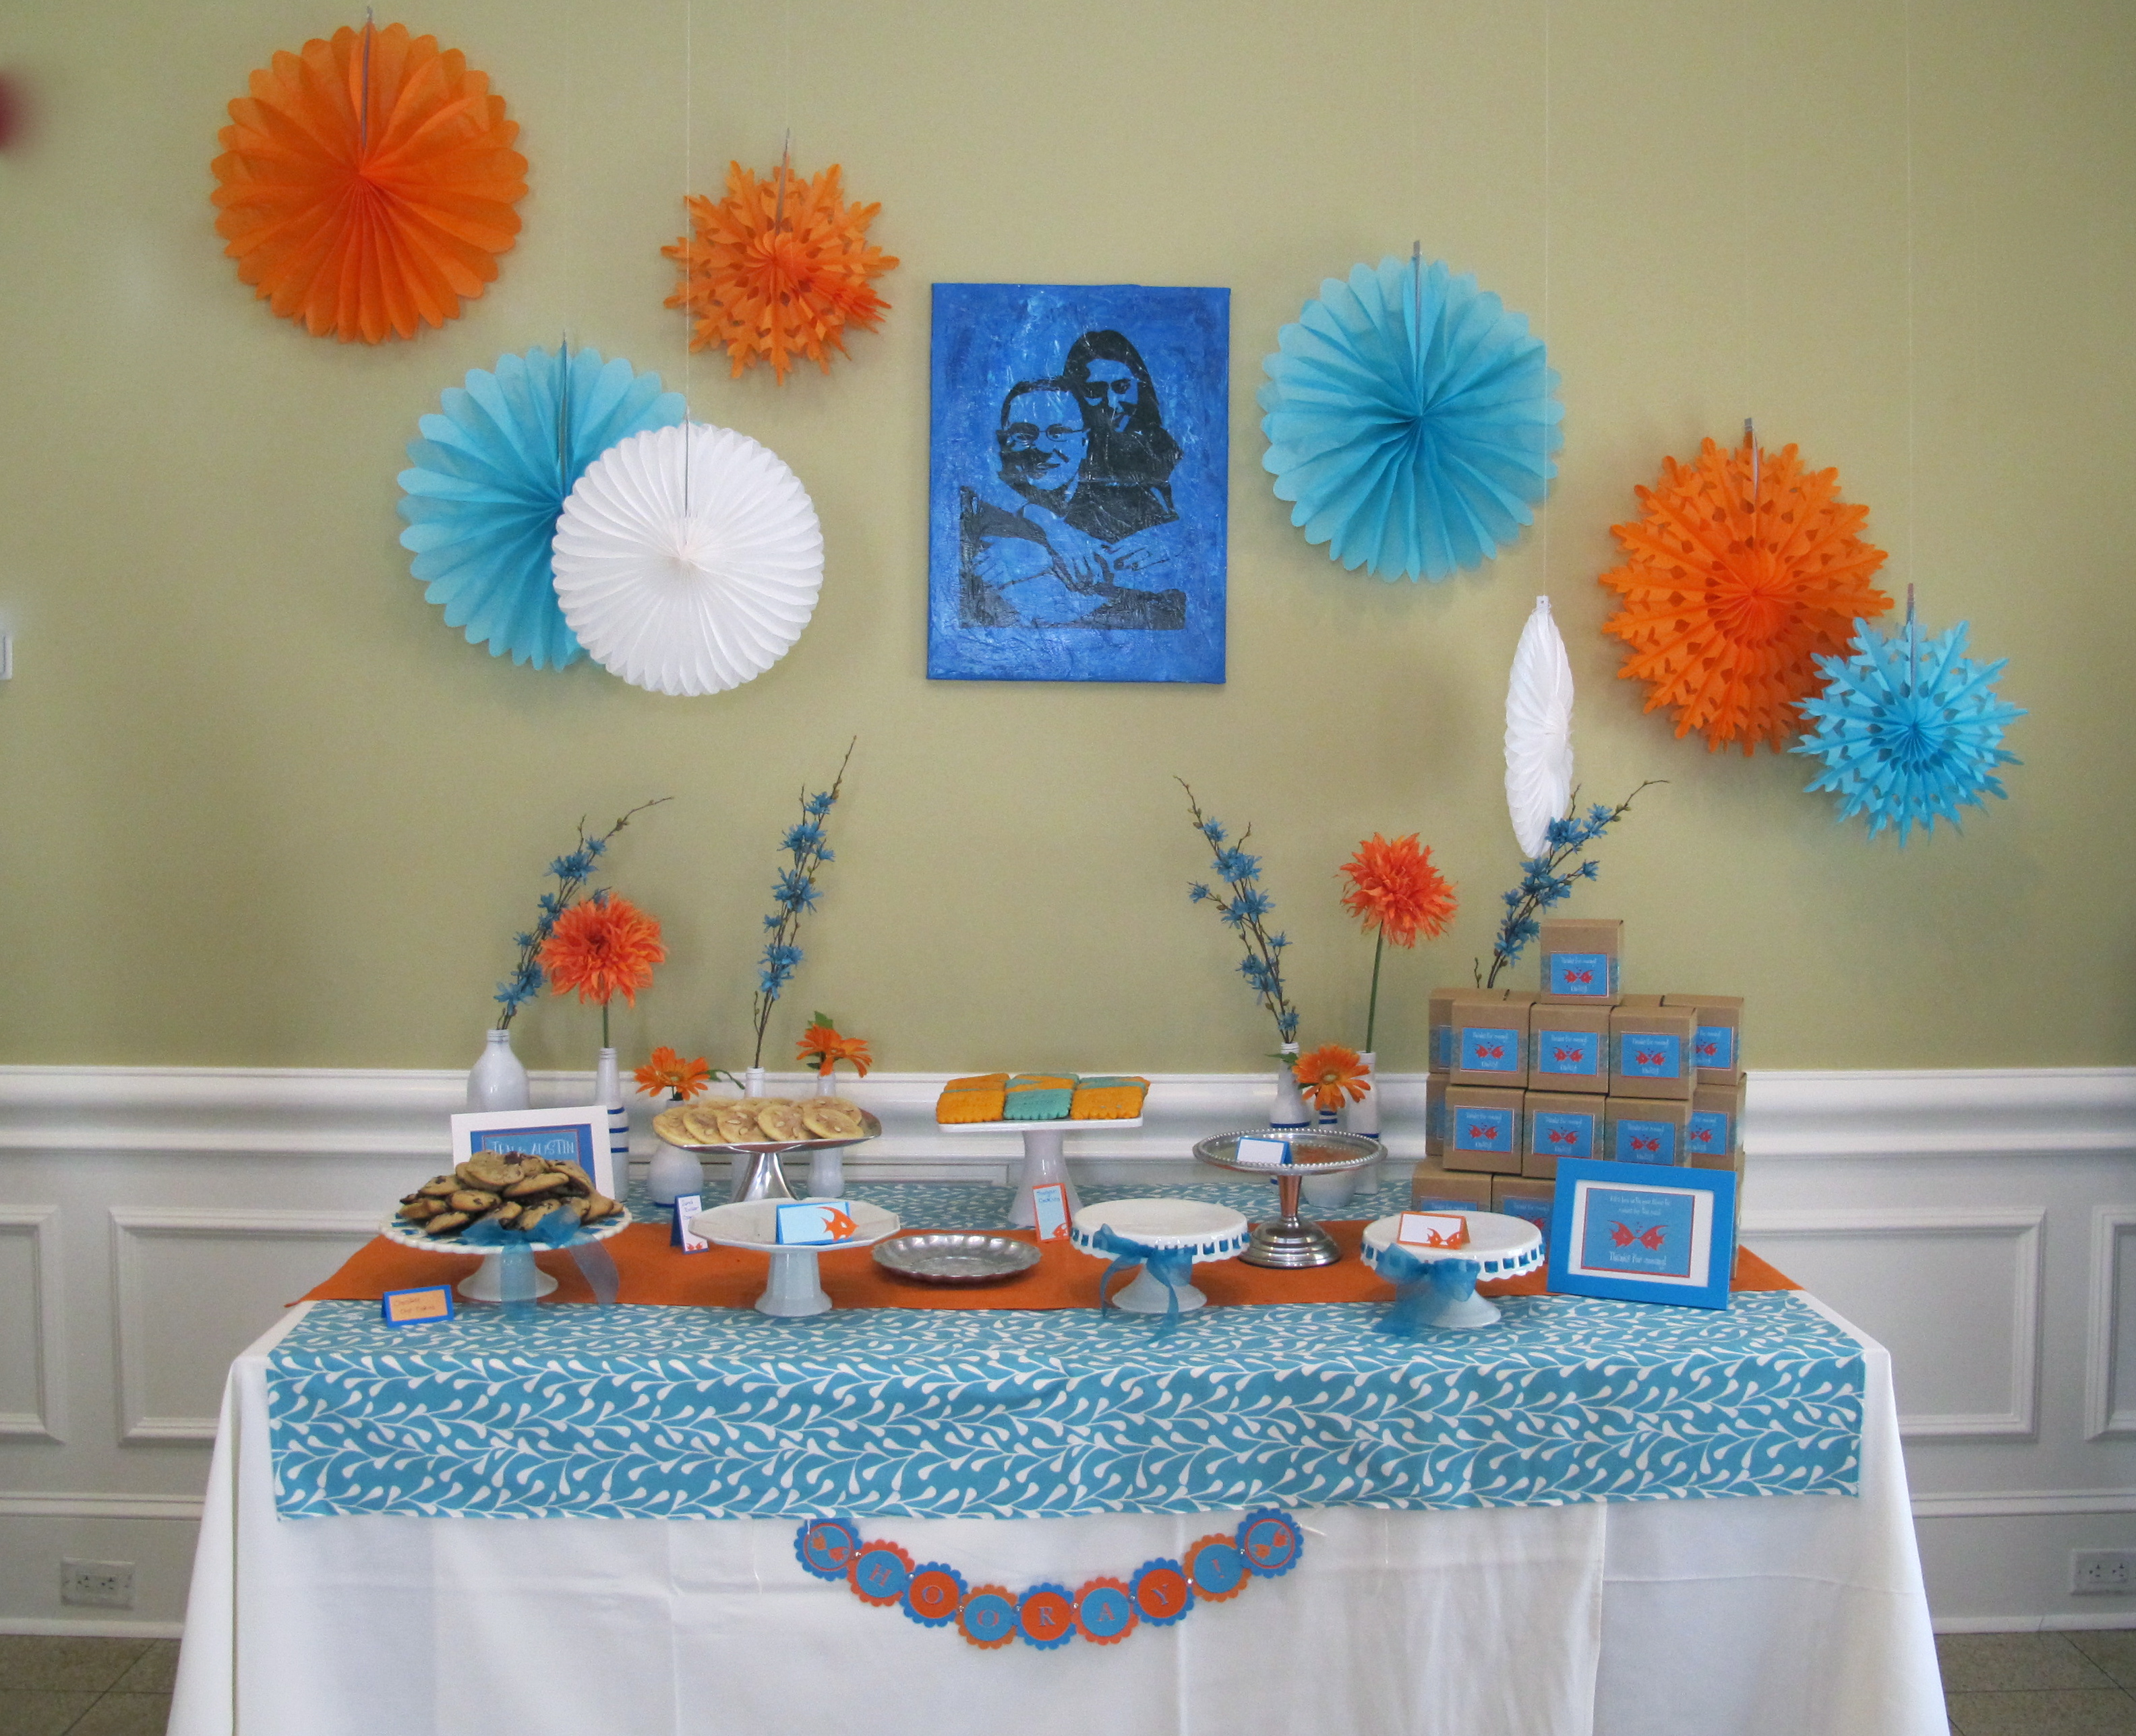 This party was a lot of fun to decorate for. The groom's favorite color is orange (go Texas!) and so we used orange and blue as the main colors. The shower was at a beautiful restaurant, so the only thing we did was the dessert table and the guest's tables. We collected glass vases and jars and spray painted them all white, then added blue artists tape to give them some fun lines. Orange and blue flowers were picked up at a local craft store and added to the vases, which sat behind the dessert table.